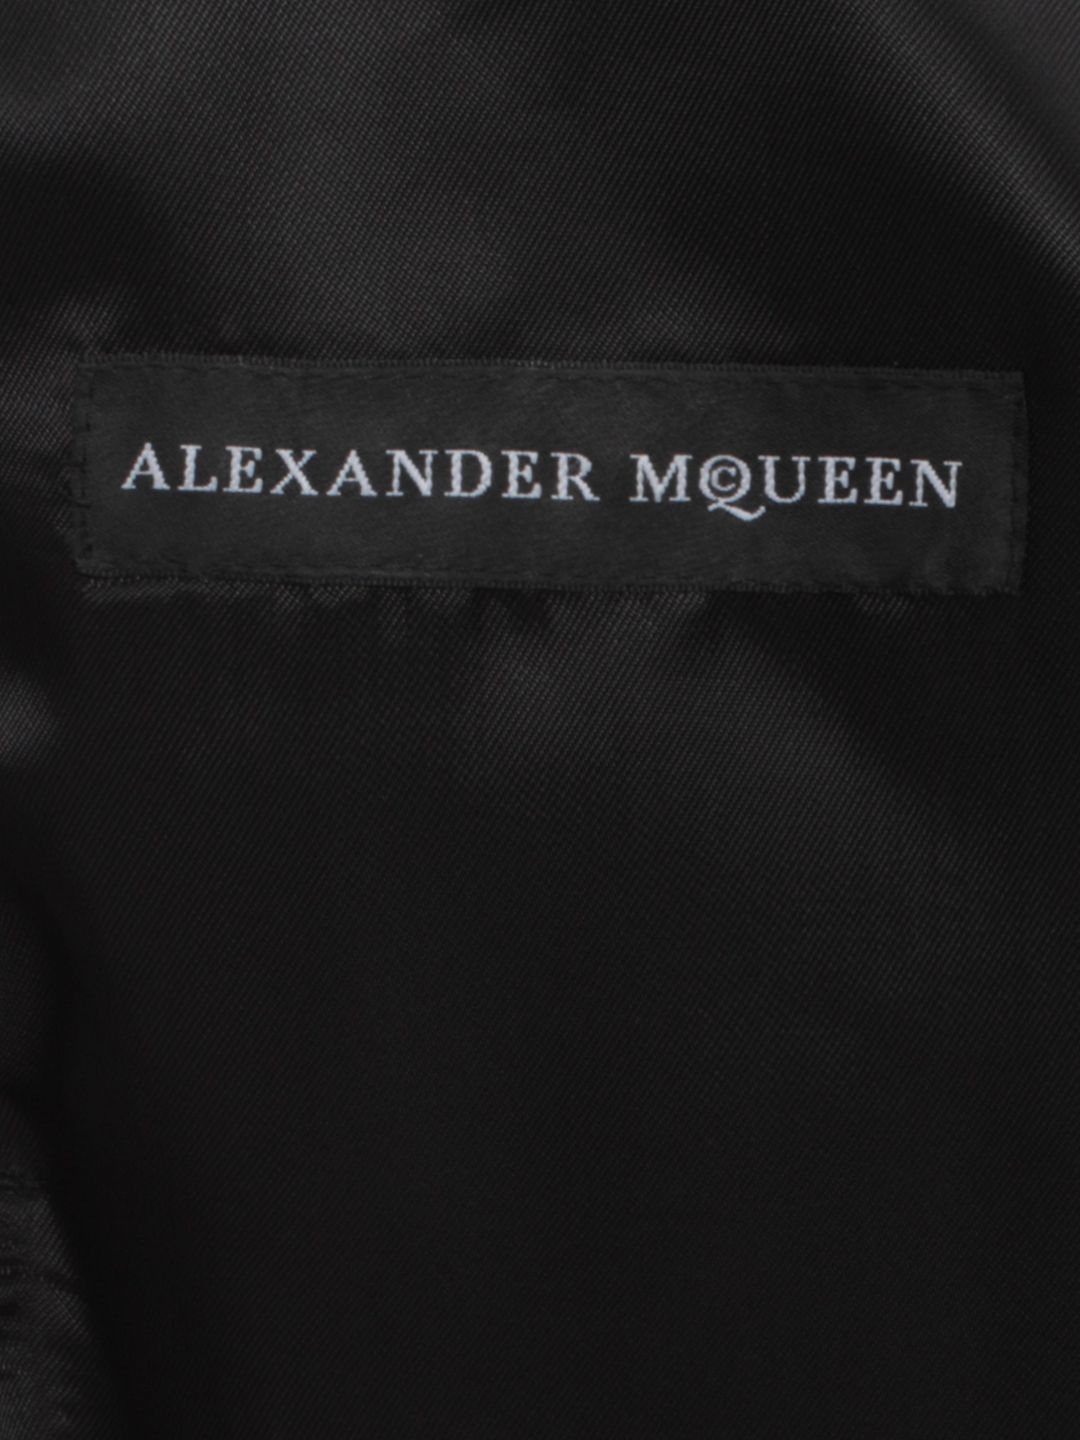 alex black single men X-men alex grew into an adult unaware of his brother's developing mutant power or his identity  when the rest of the royal inhumans broke out of their own prison and located black bolt.